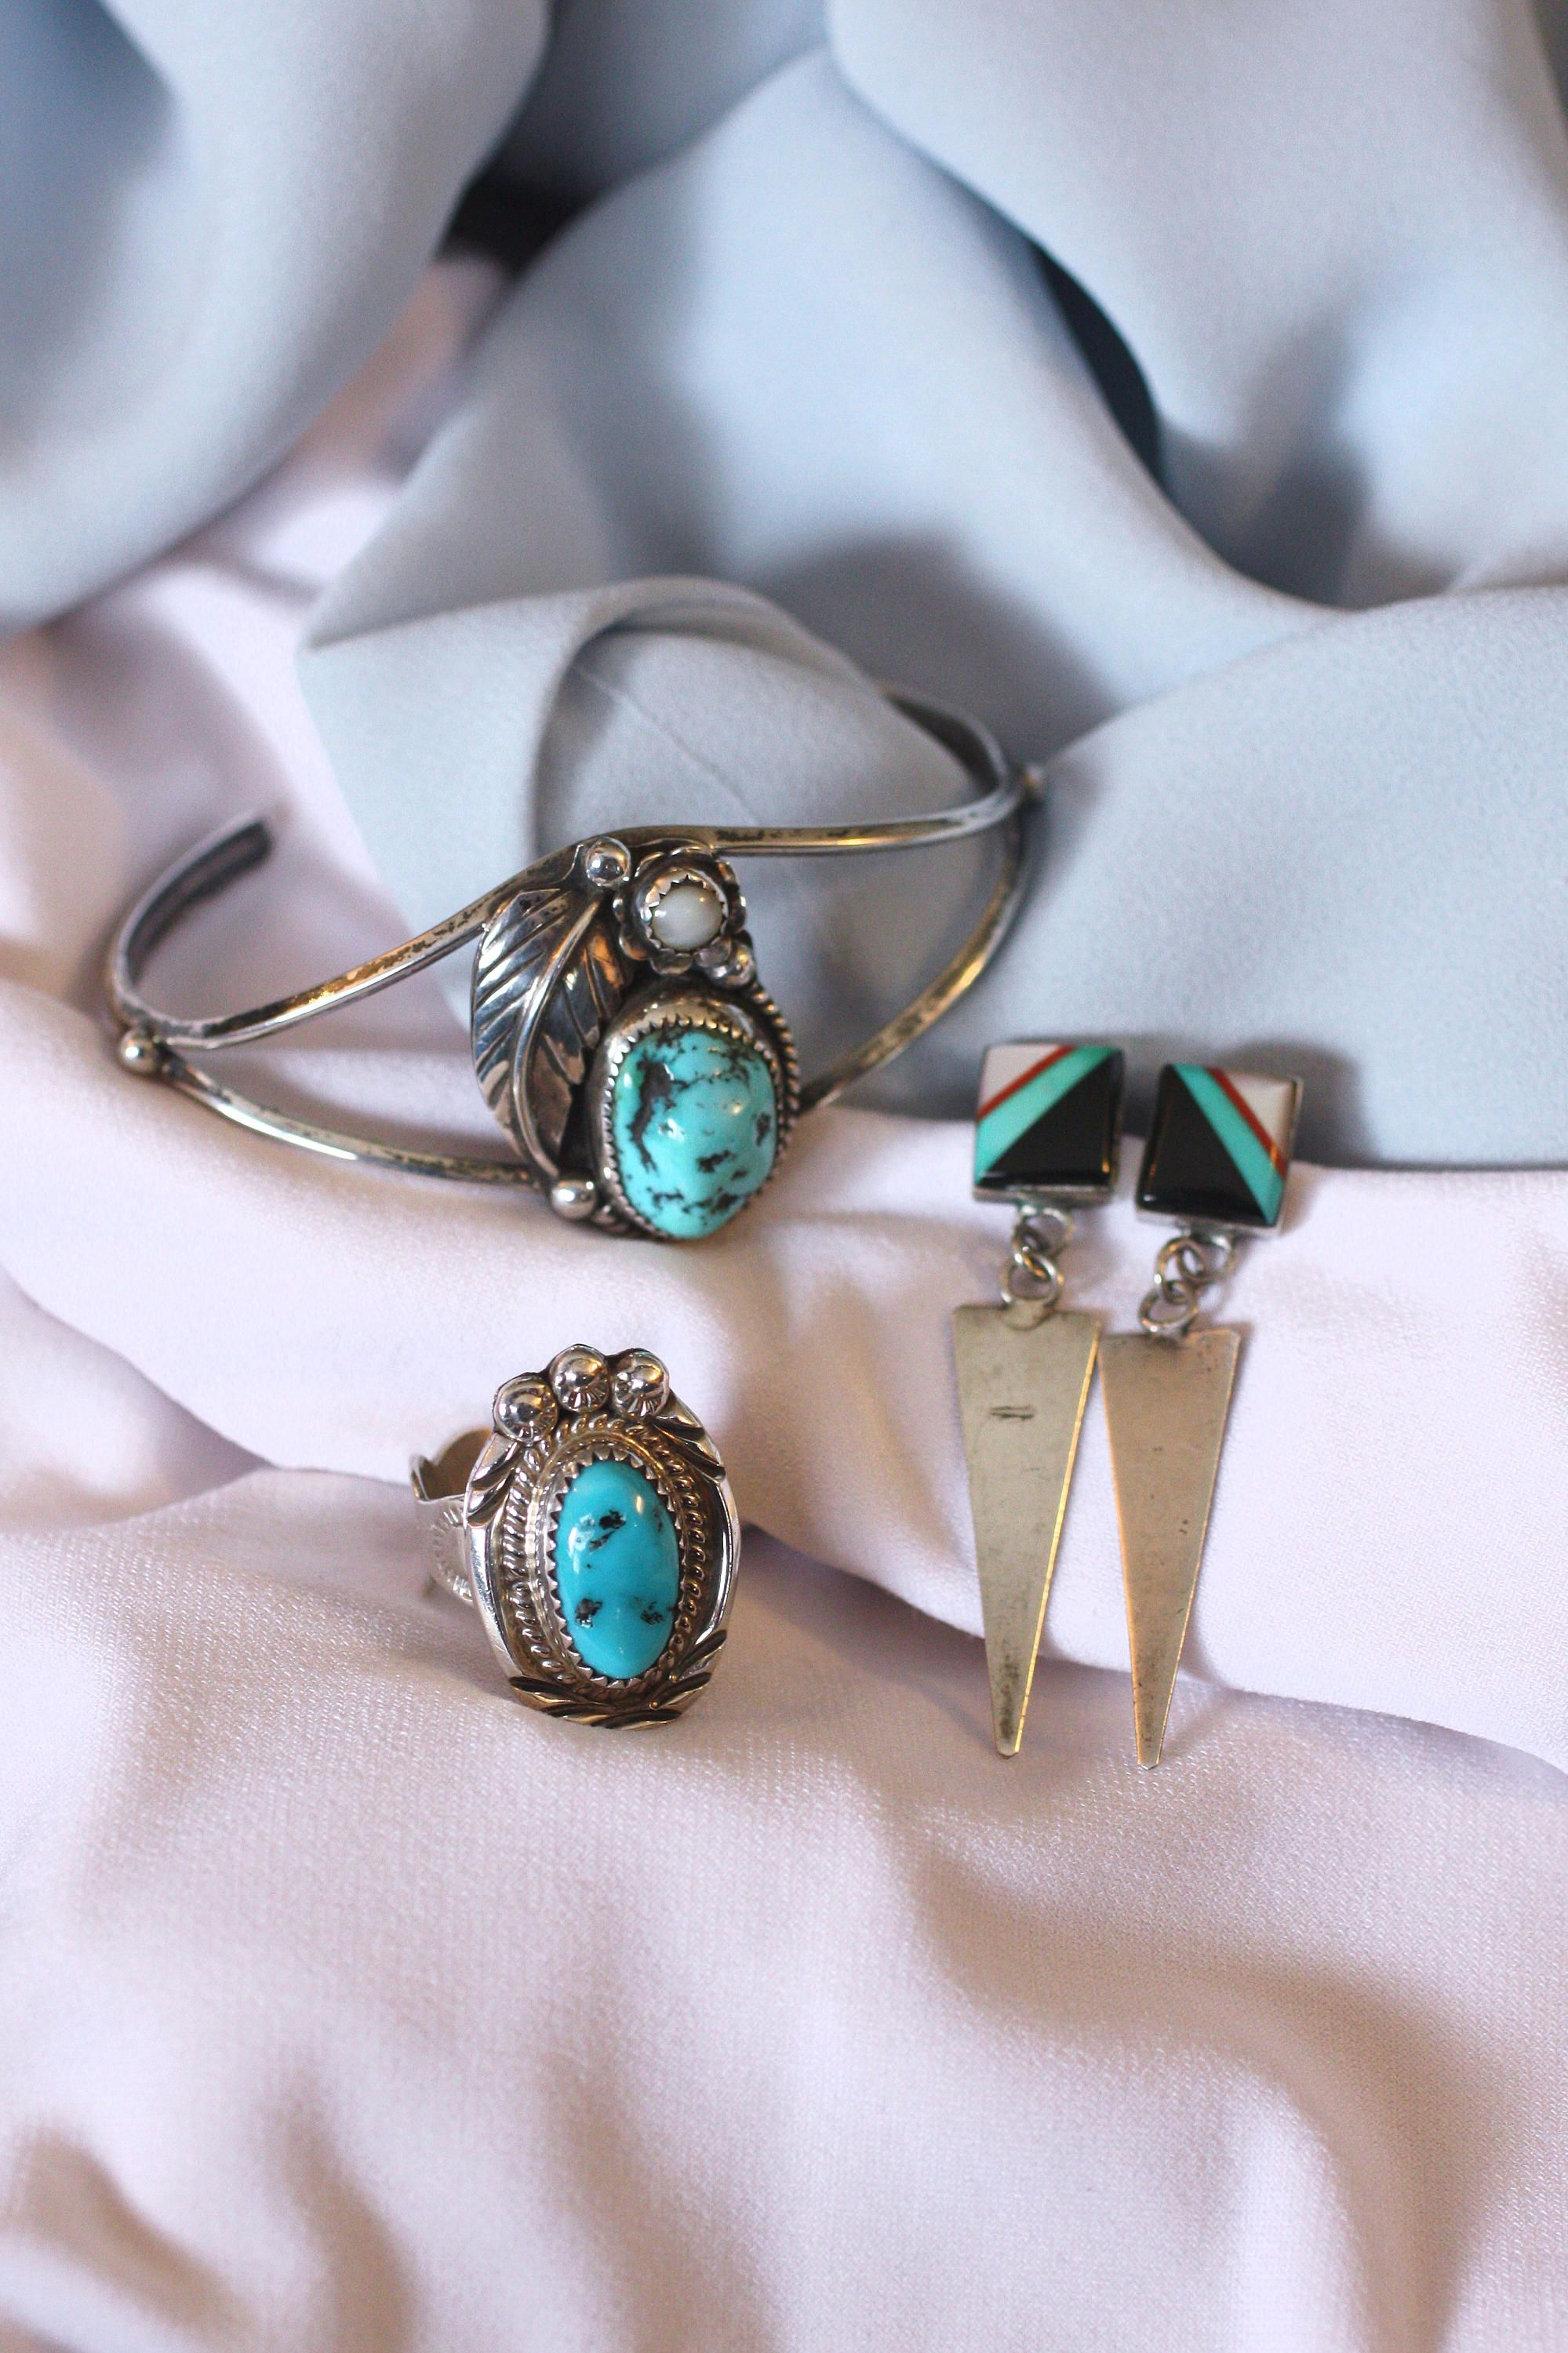 Post Twisted Rope Wrapped Oval Oxidized Turquoise Sterling Silver Stud Earrings